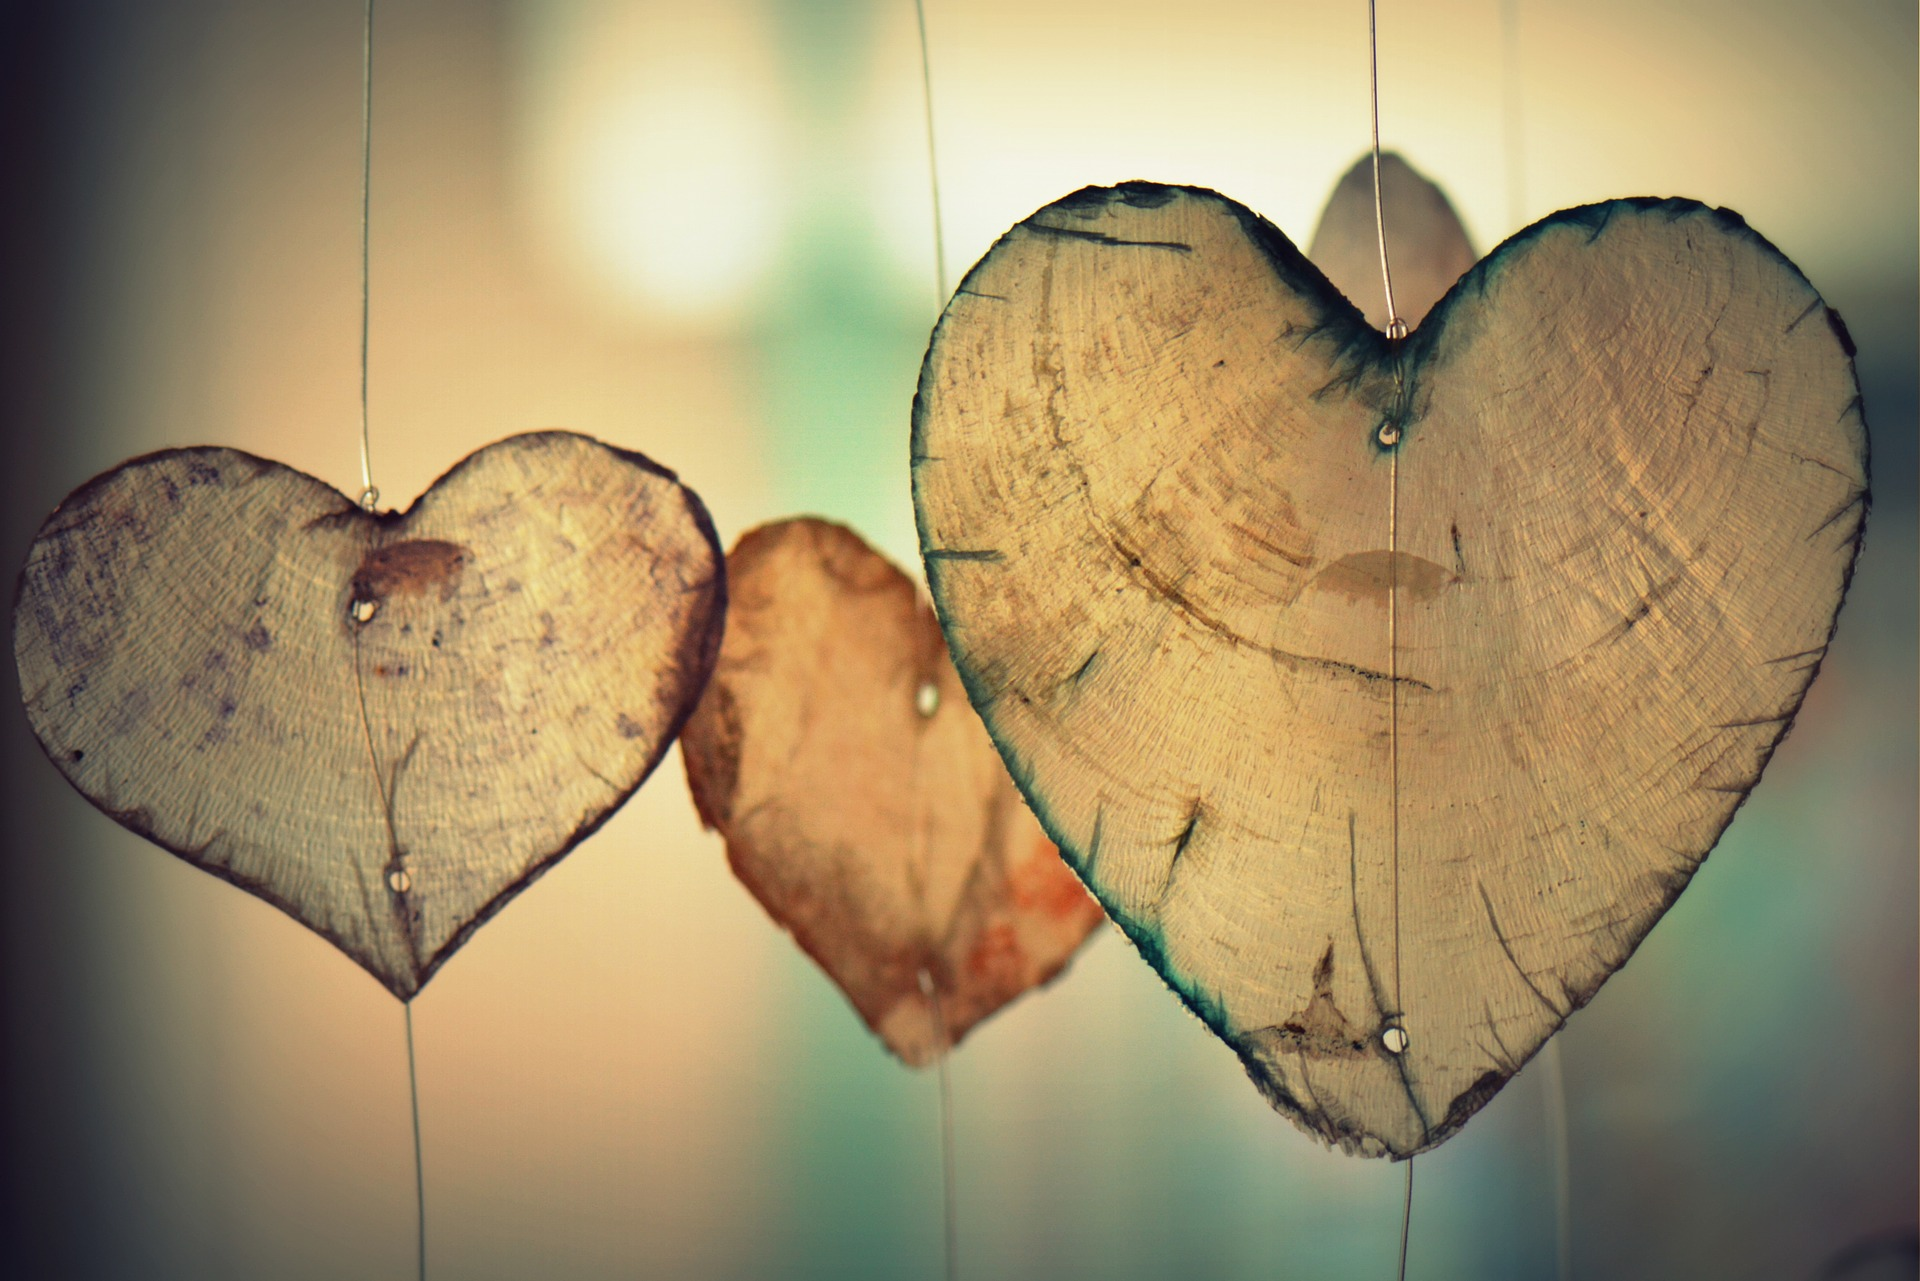 Heart shaped decorations